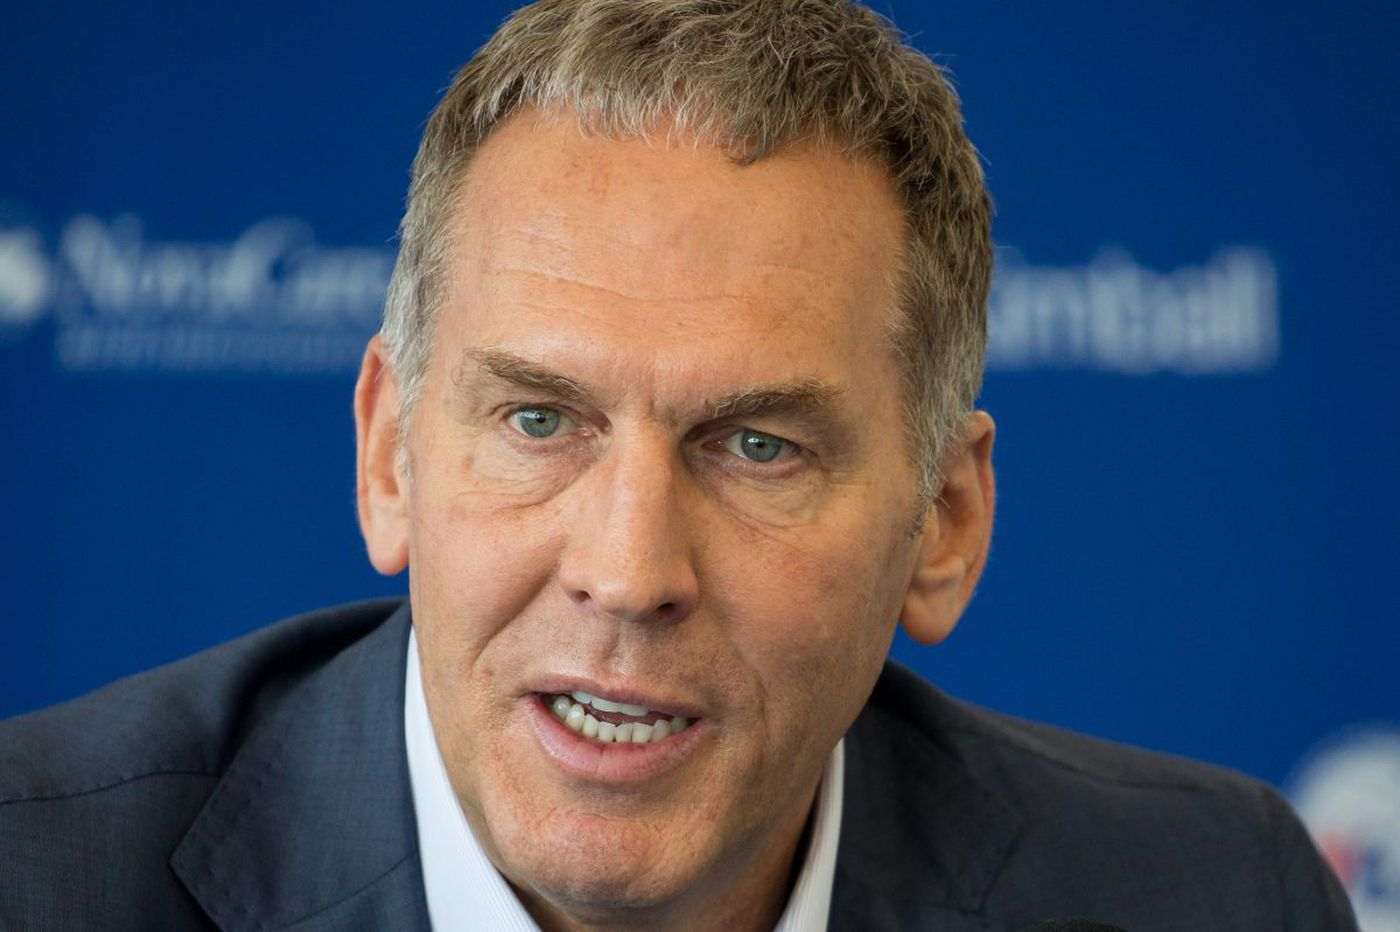 On Bryan Colangelo's Twitter controversy, NBA sources say 'the damage is done'